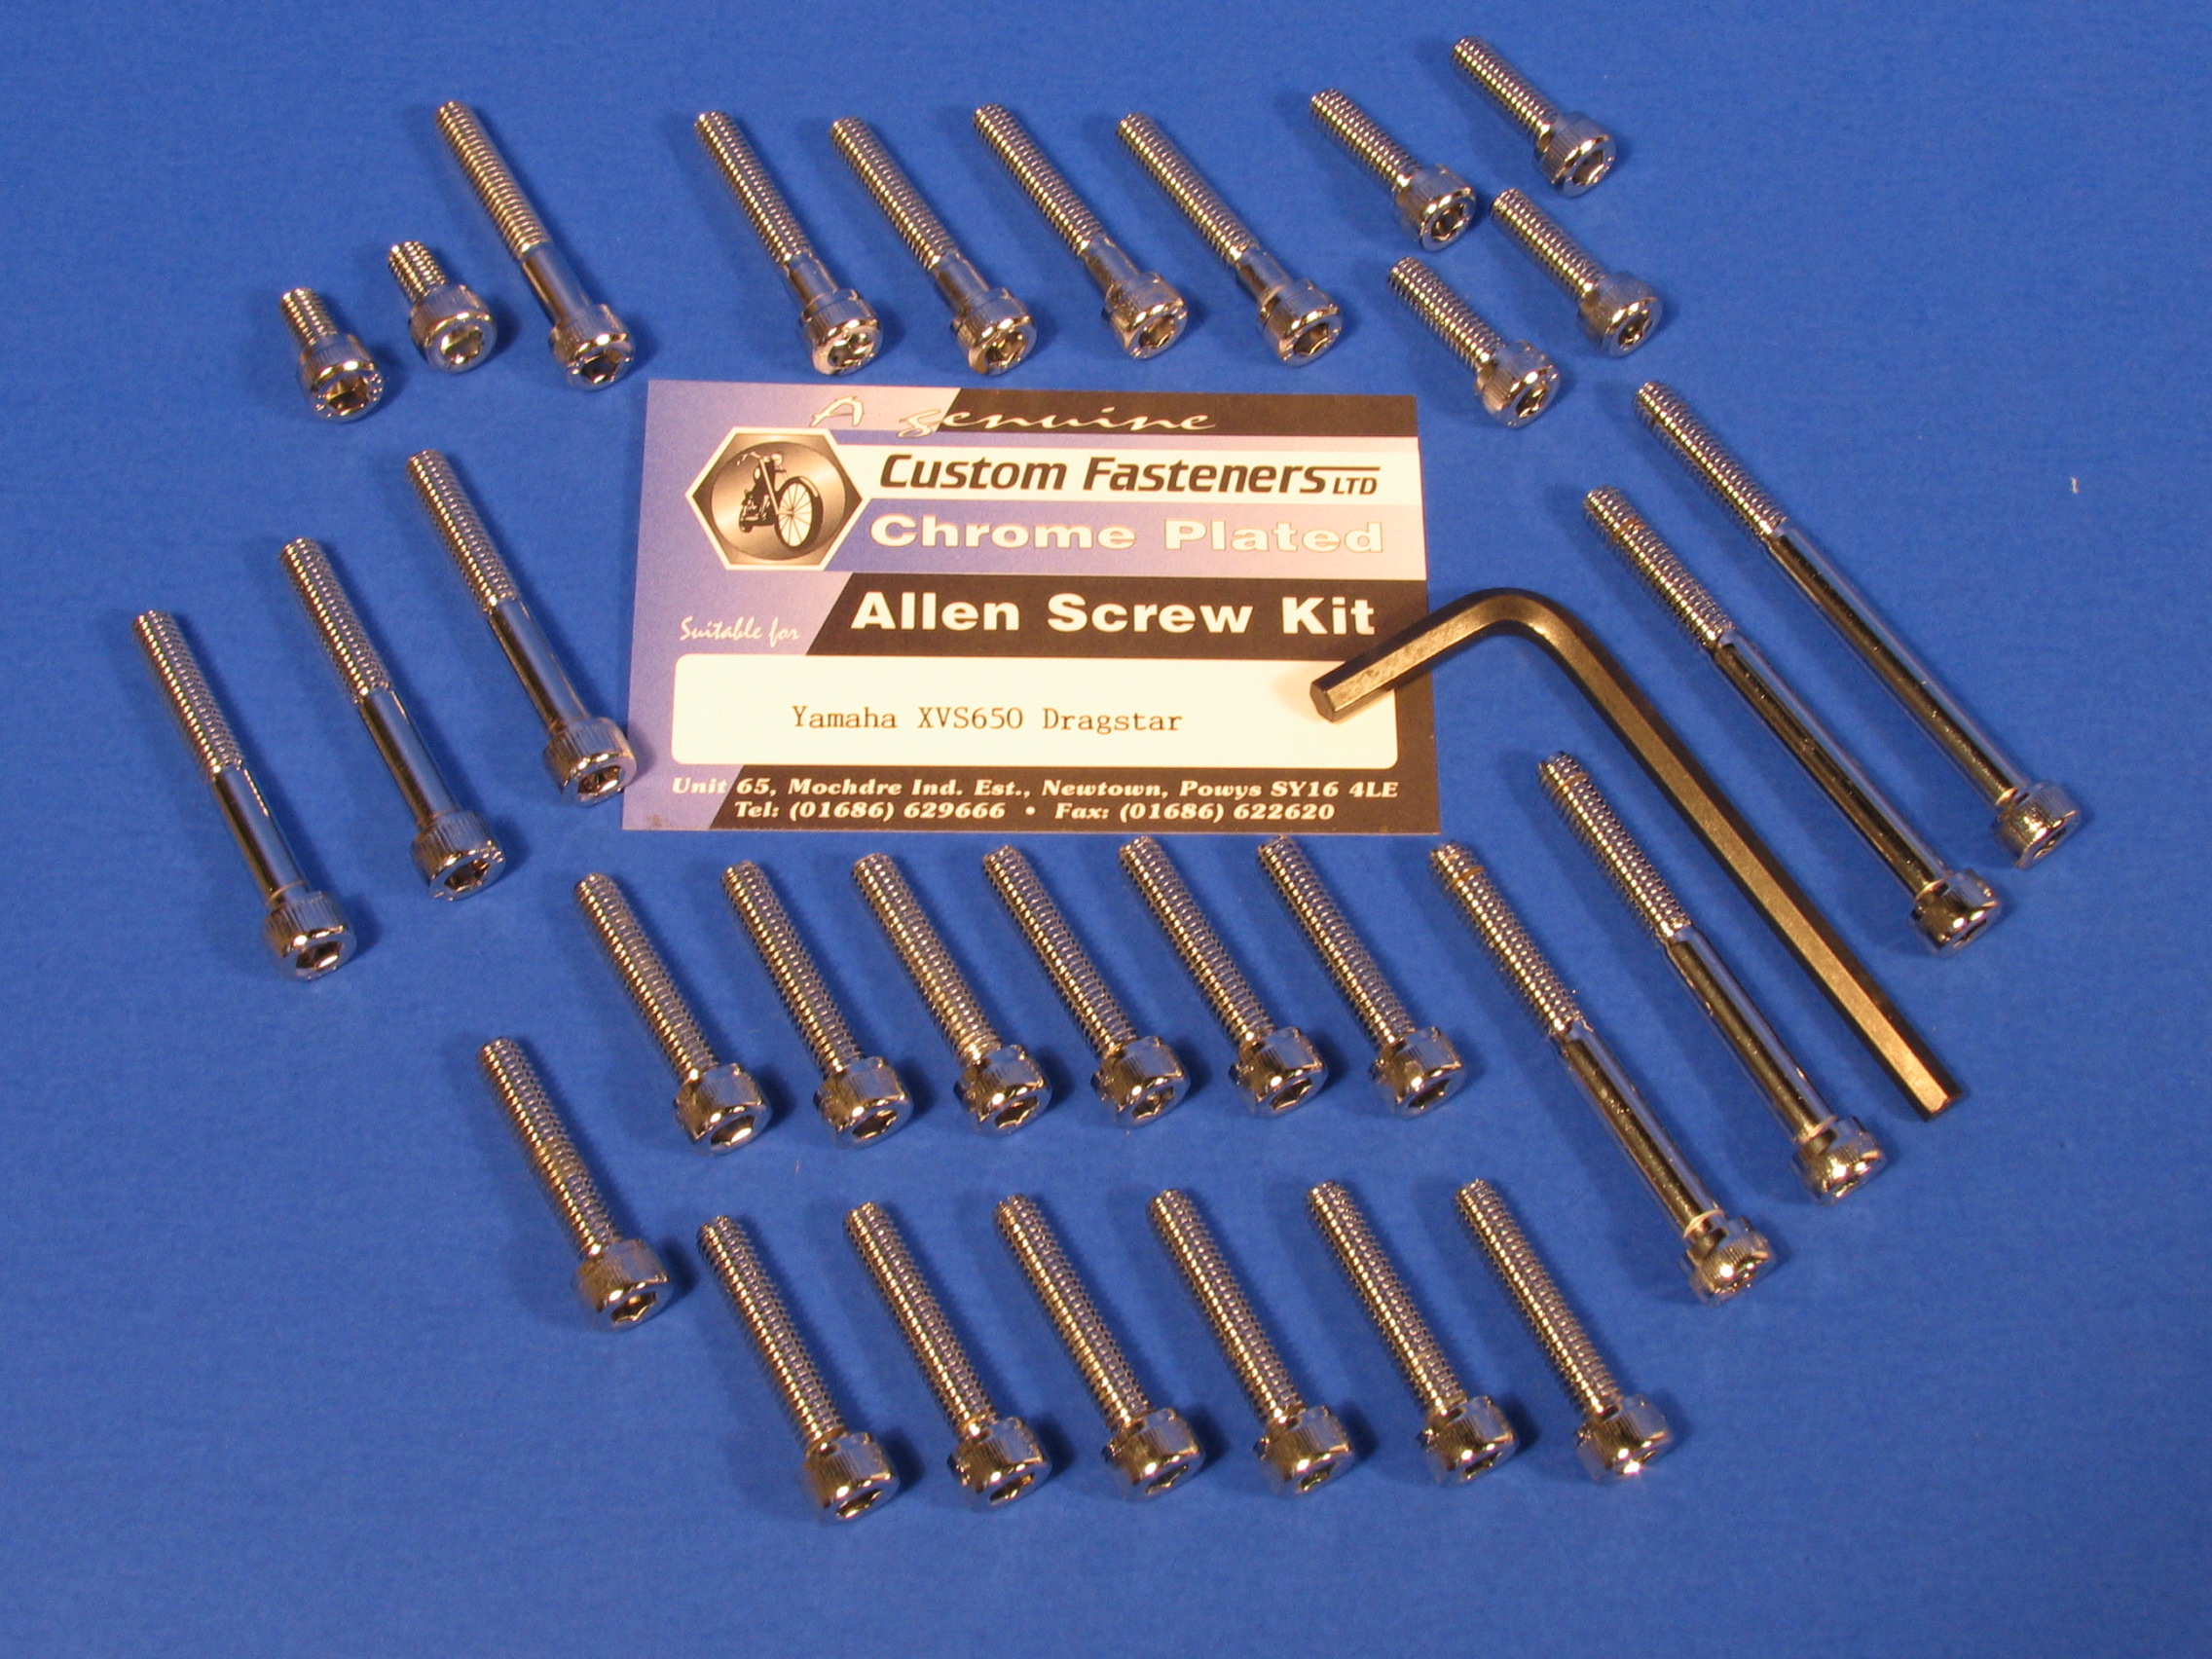 BSA Allen Screw Kits